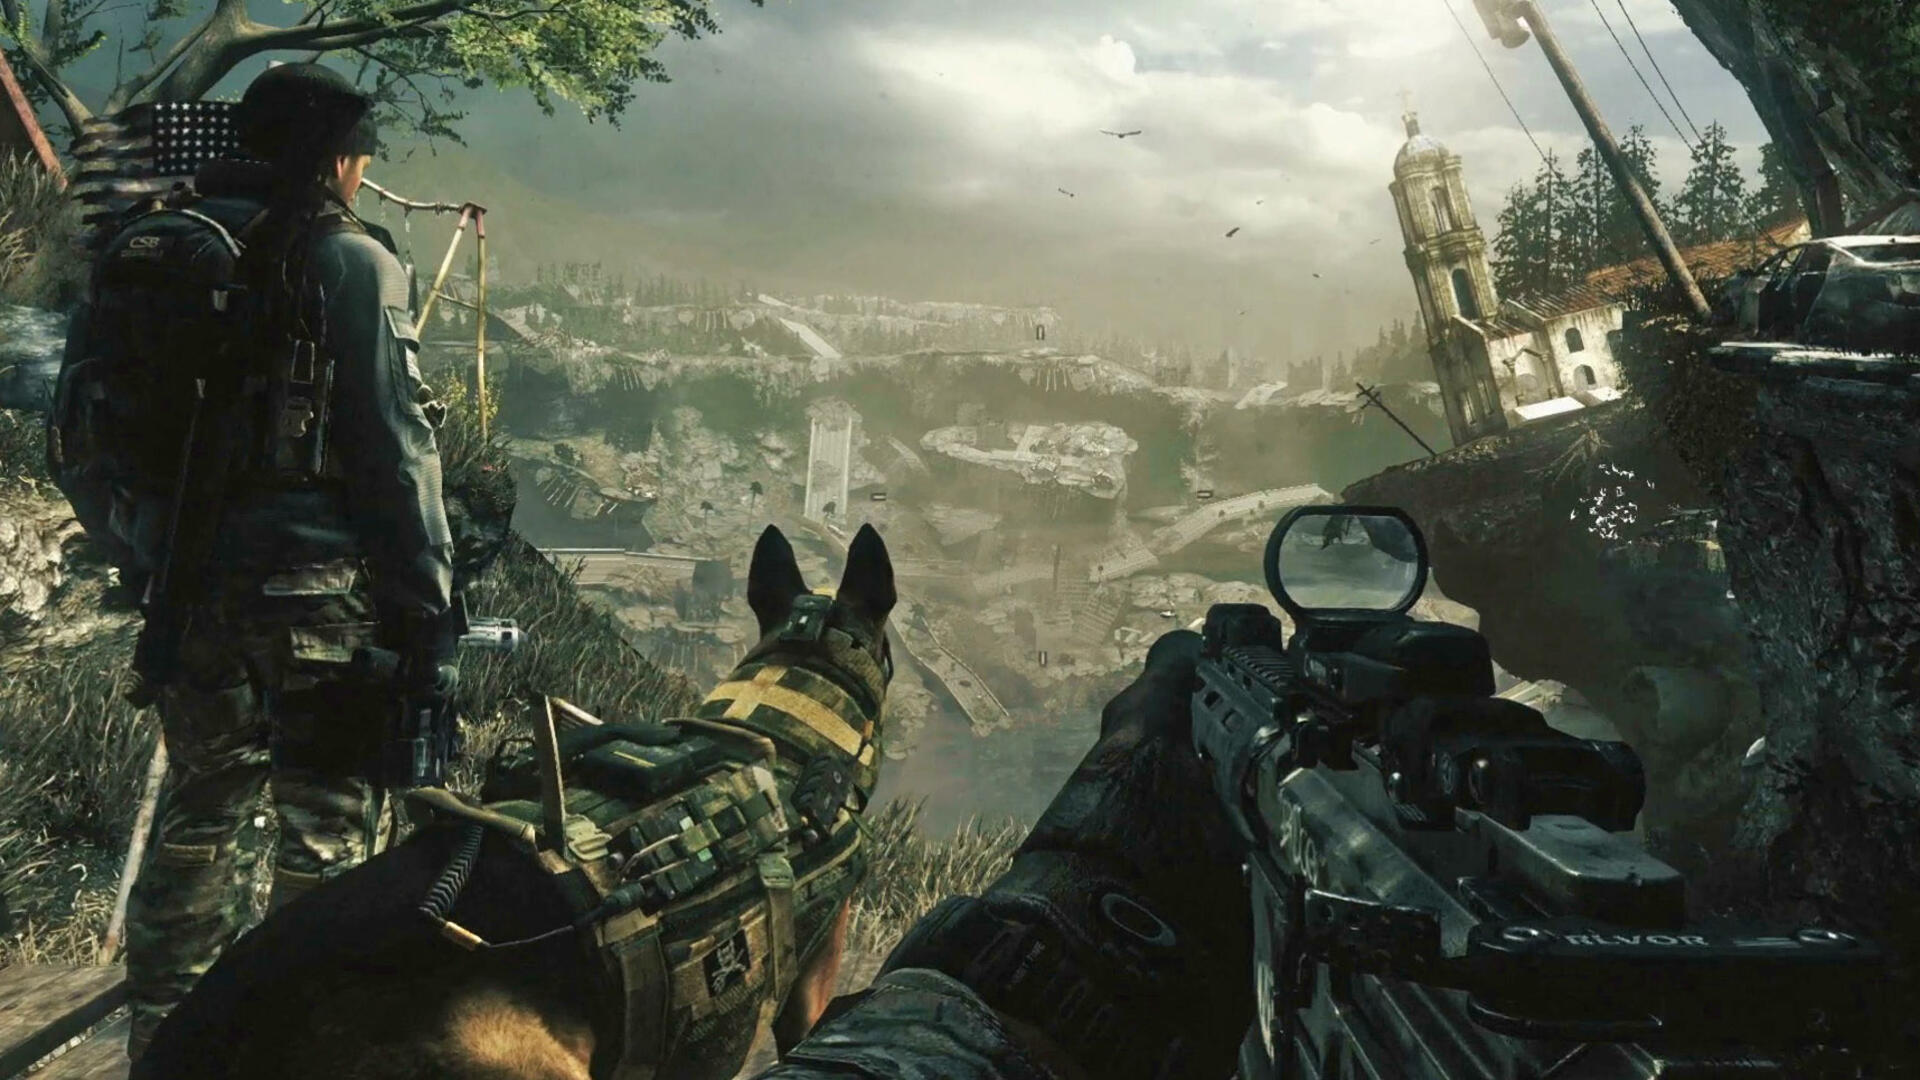 Call of Duty: Ghosts PS4 Review. A Glimpse Into the Future?